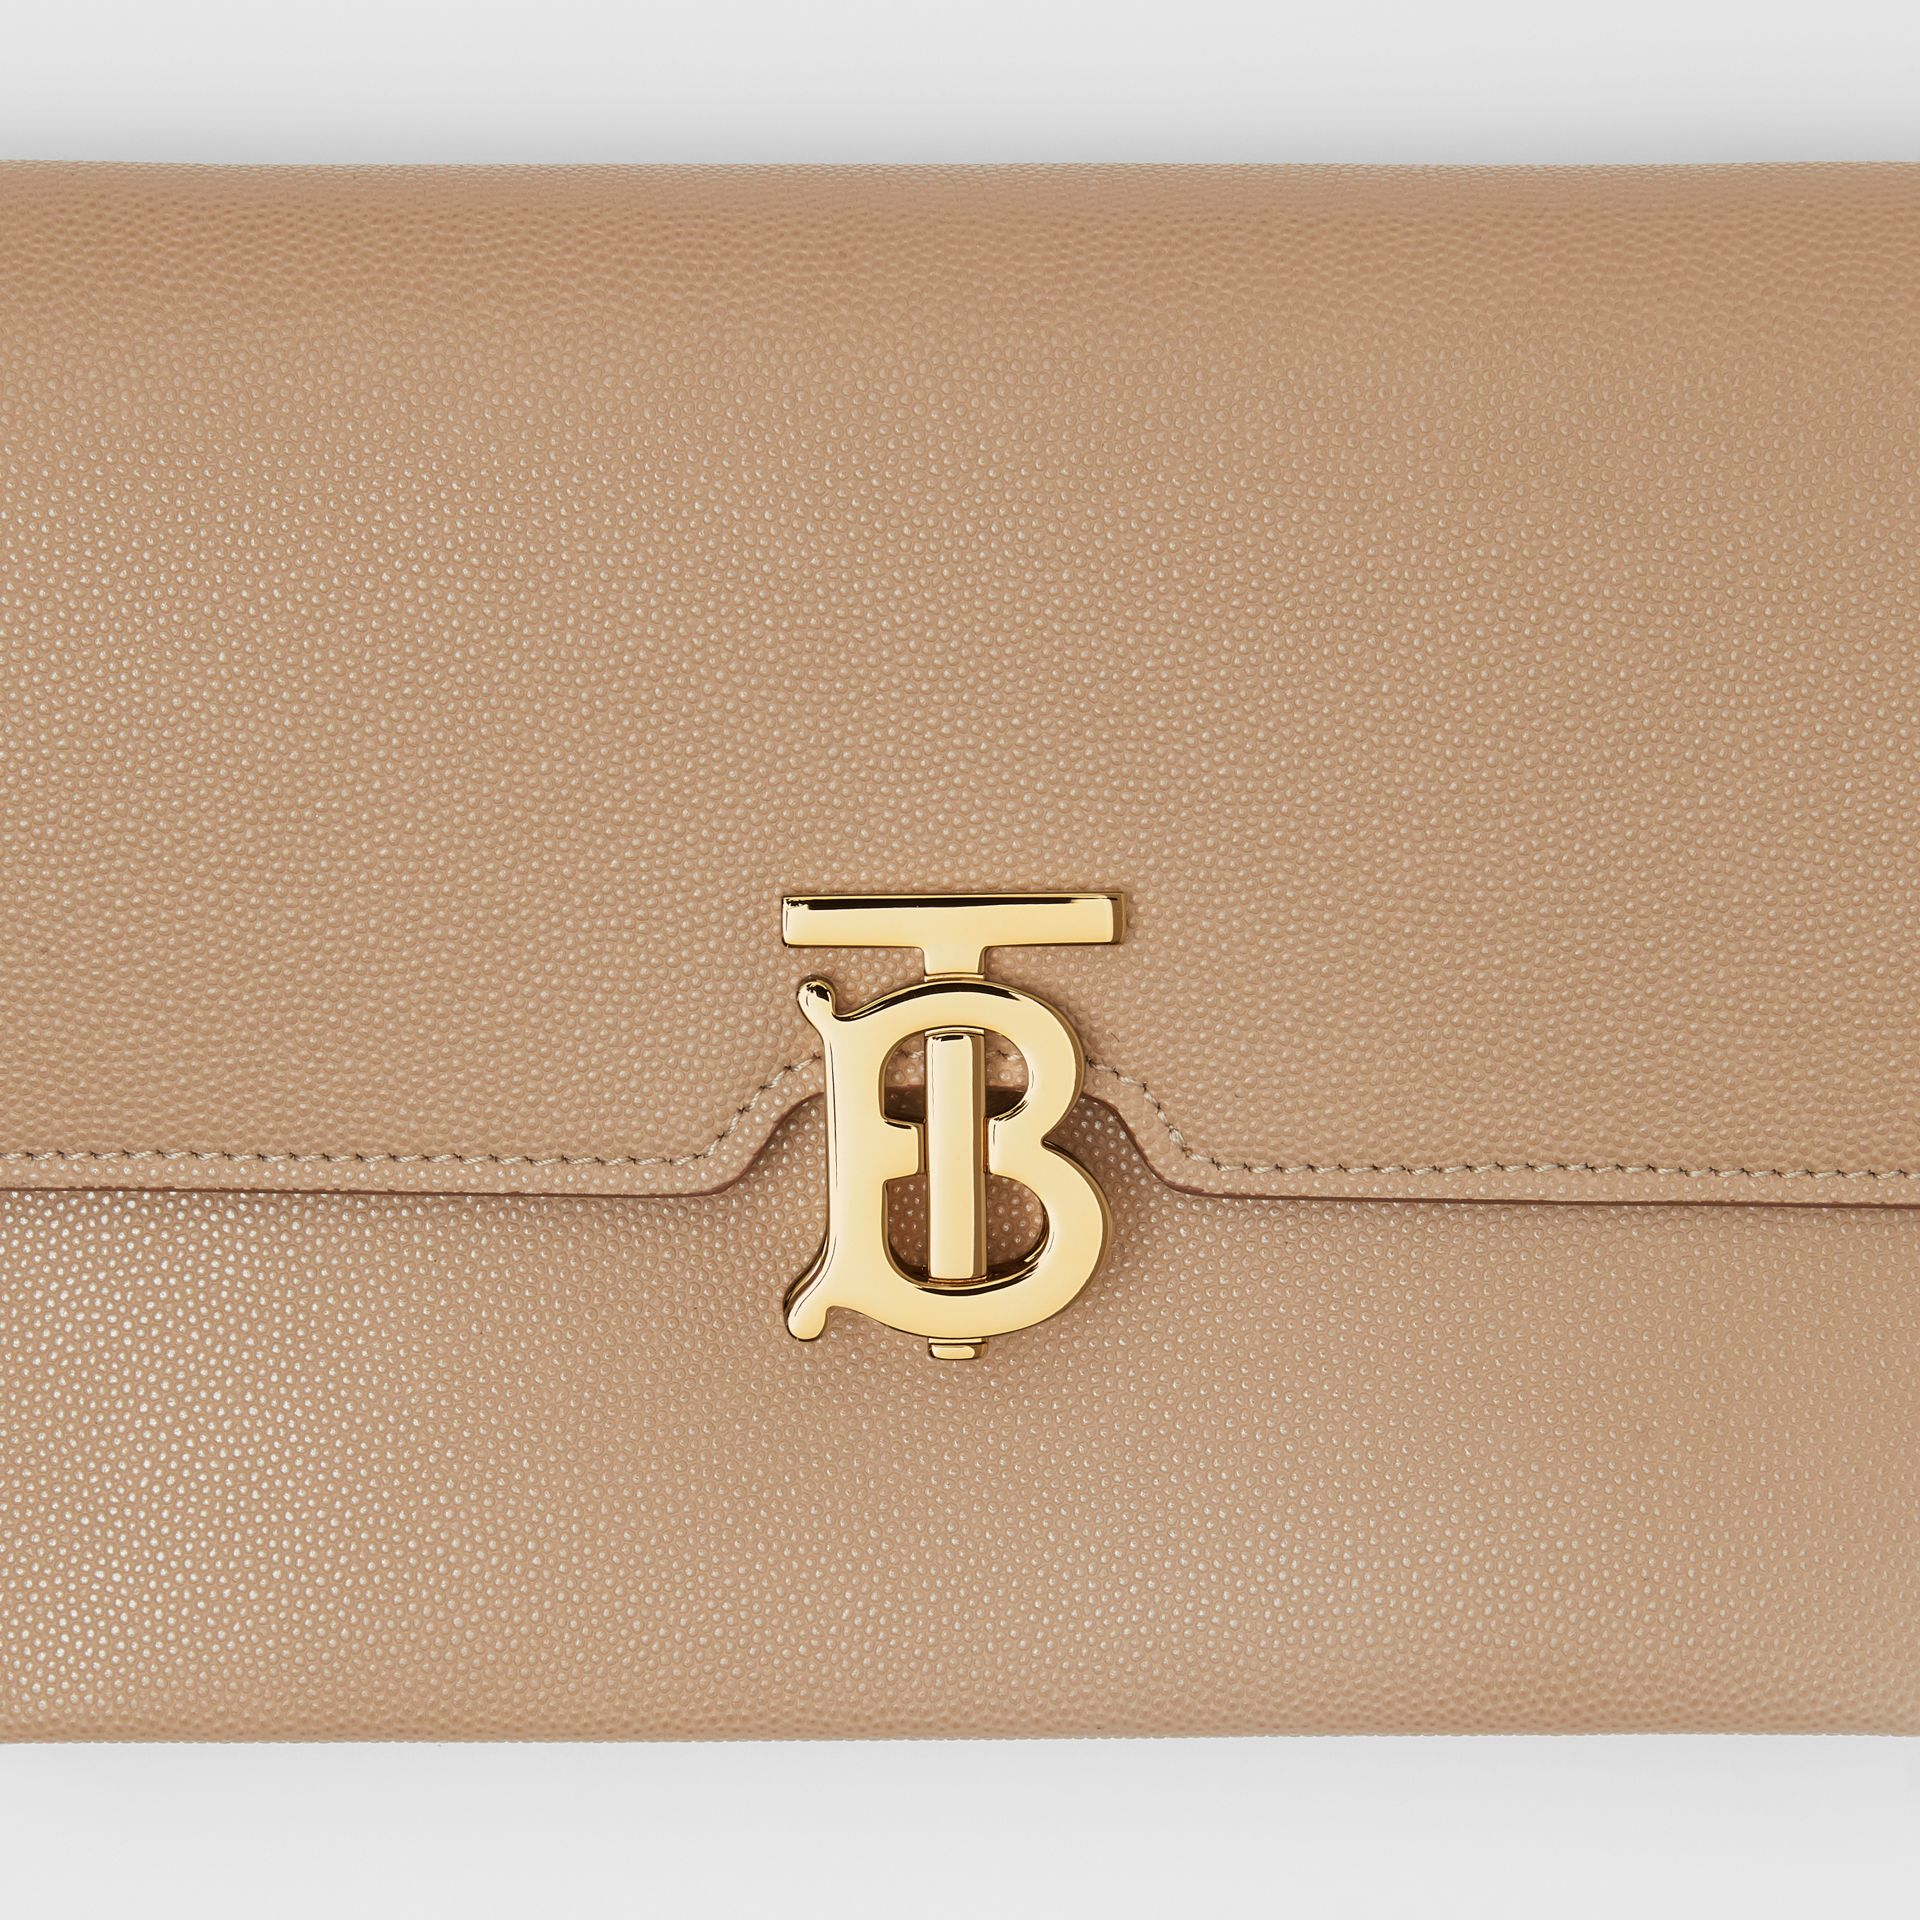 Small Monogram Motif Leather Crossbody Bag in Archive Beige - Women | Burberry - gallery image 1